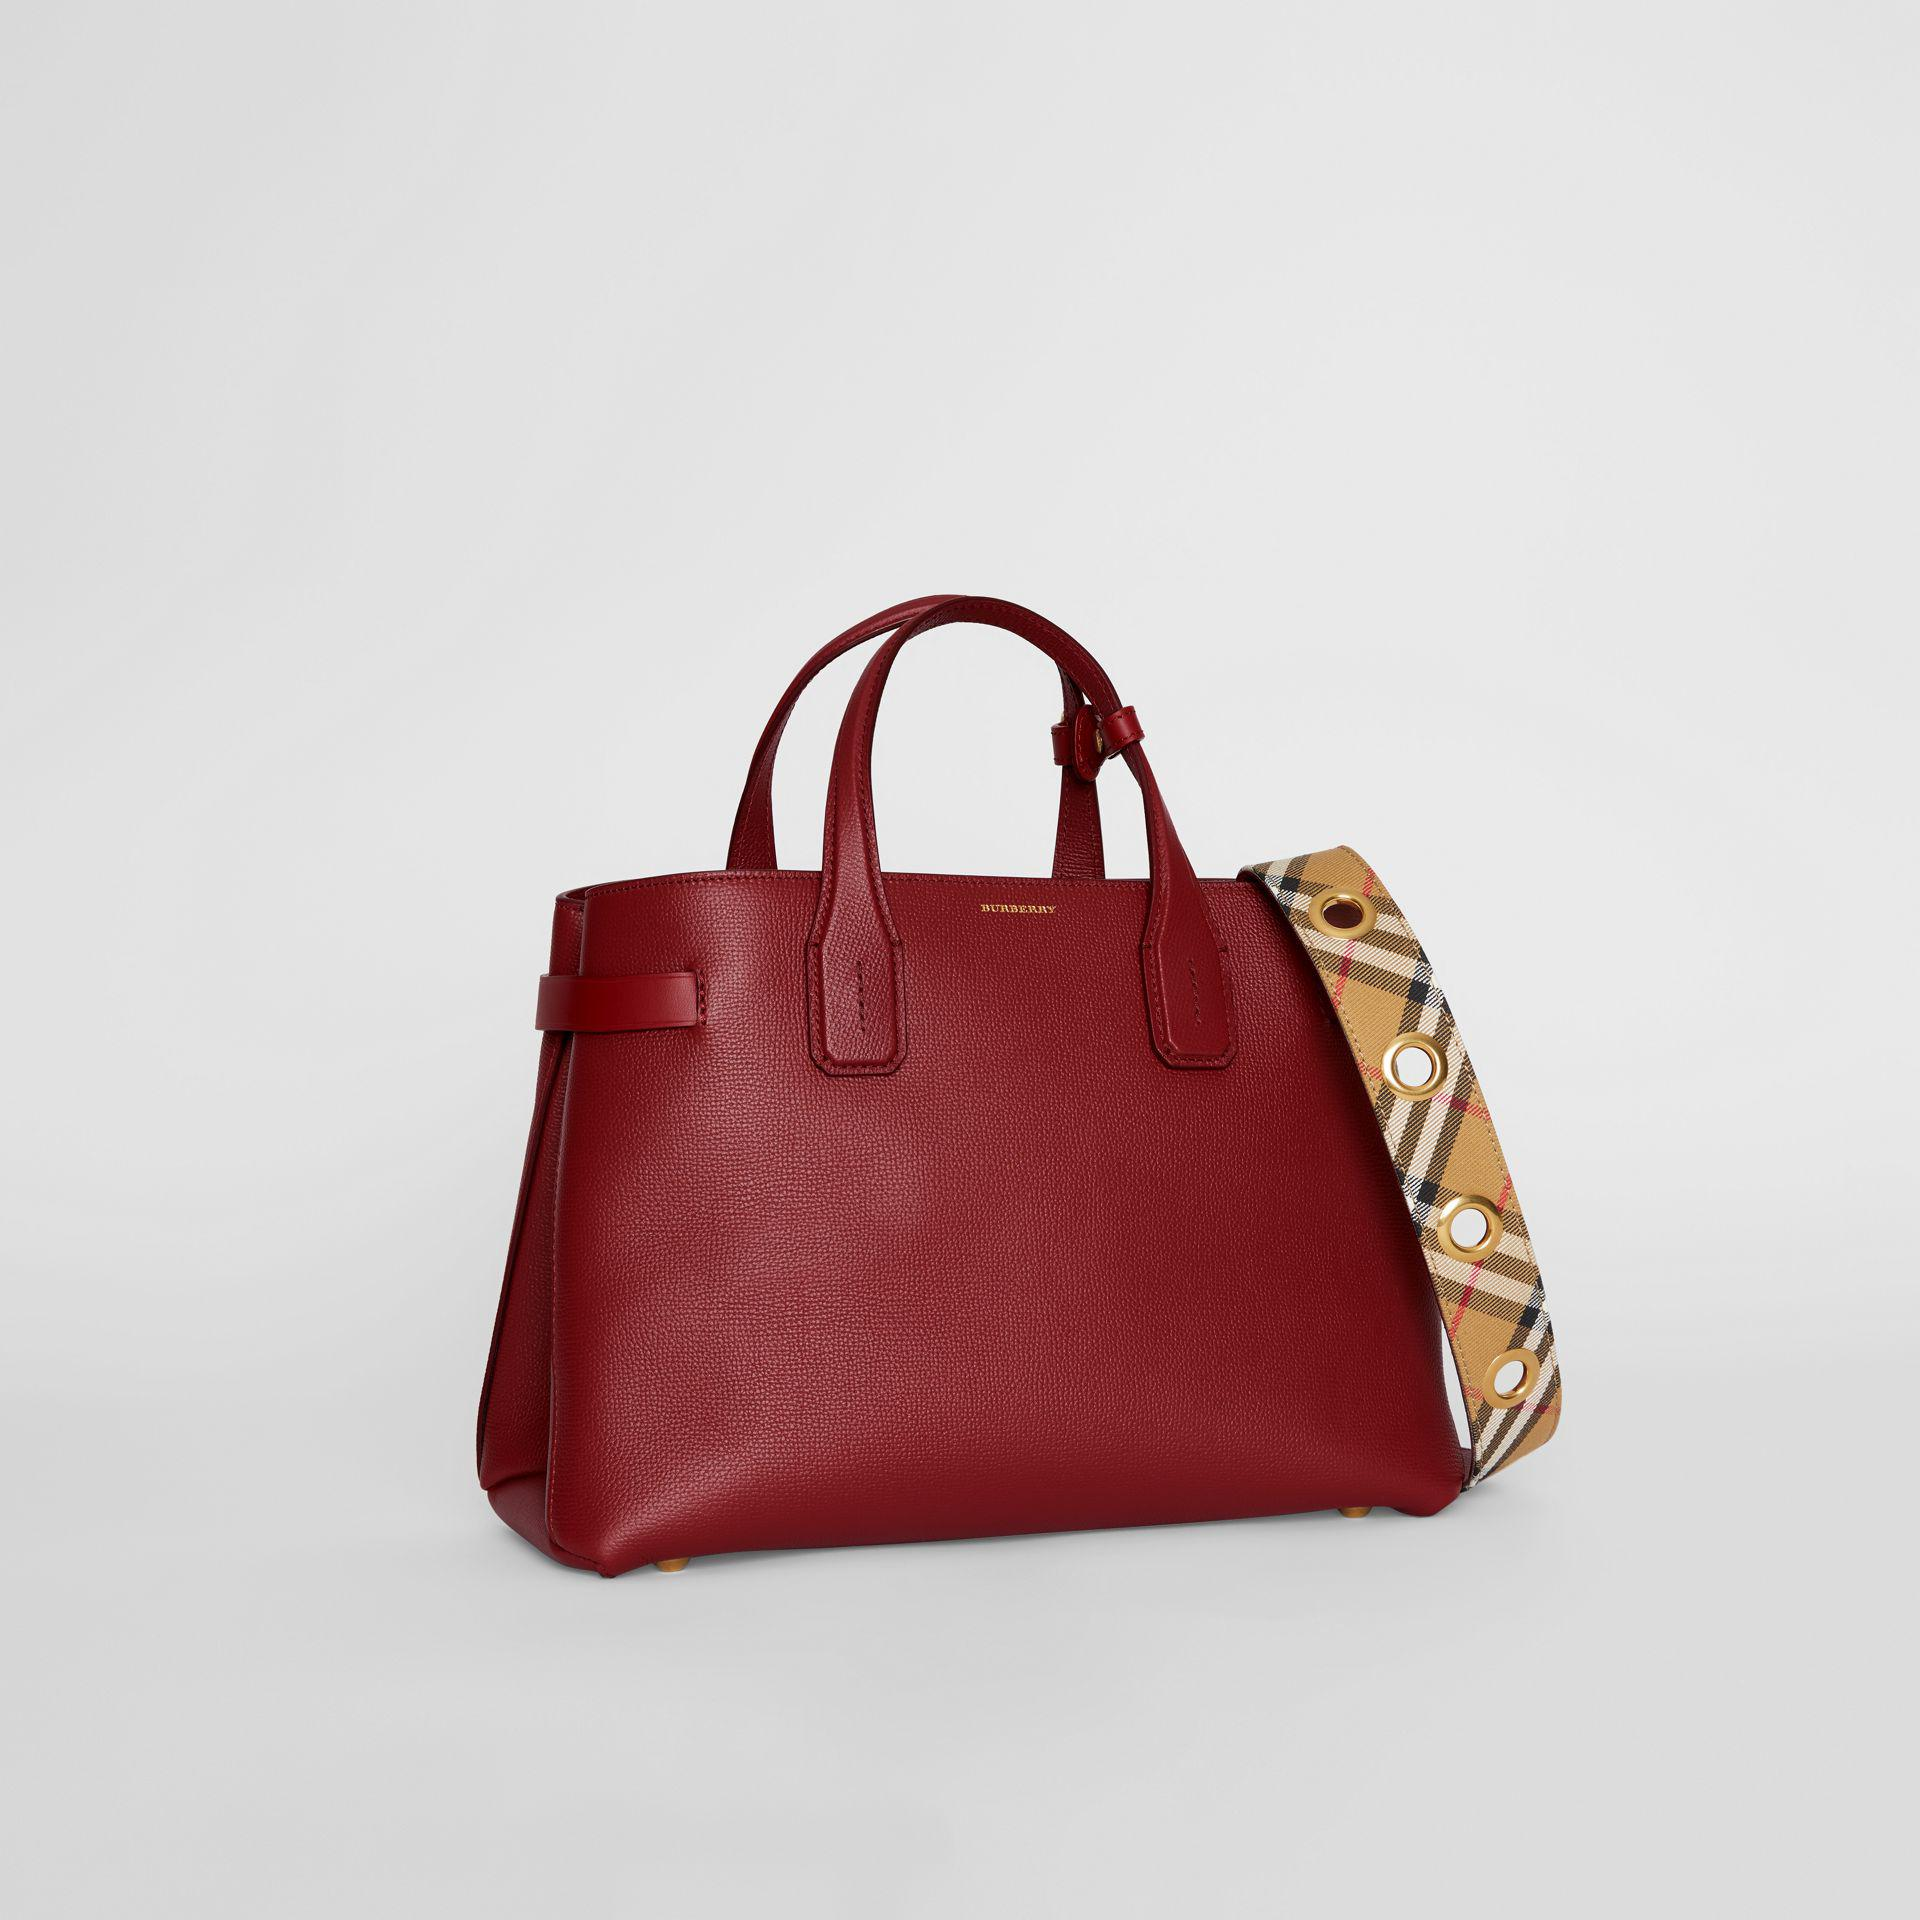 c1e8e8f57d97 Burberry The Medium Banner In Leather With Grommeted Strap in Red - Lyst